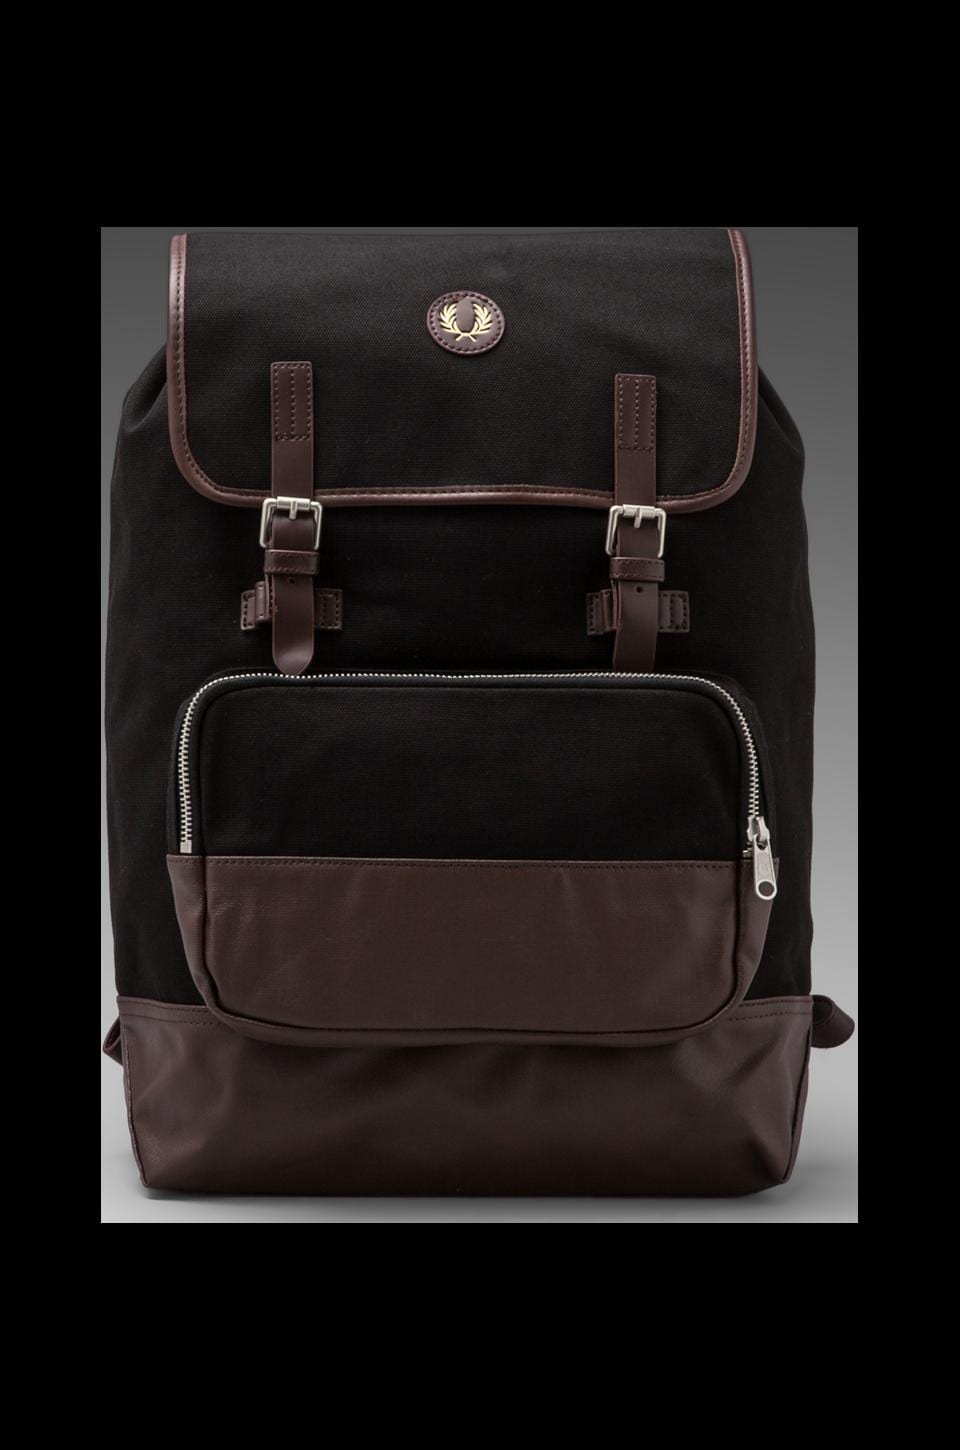 Fred Perry Cotton Rucksack in Black/ Chocolate